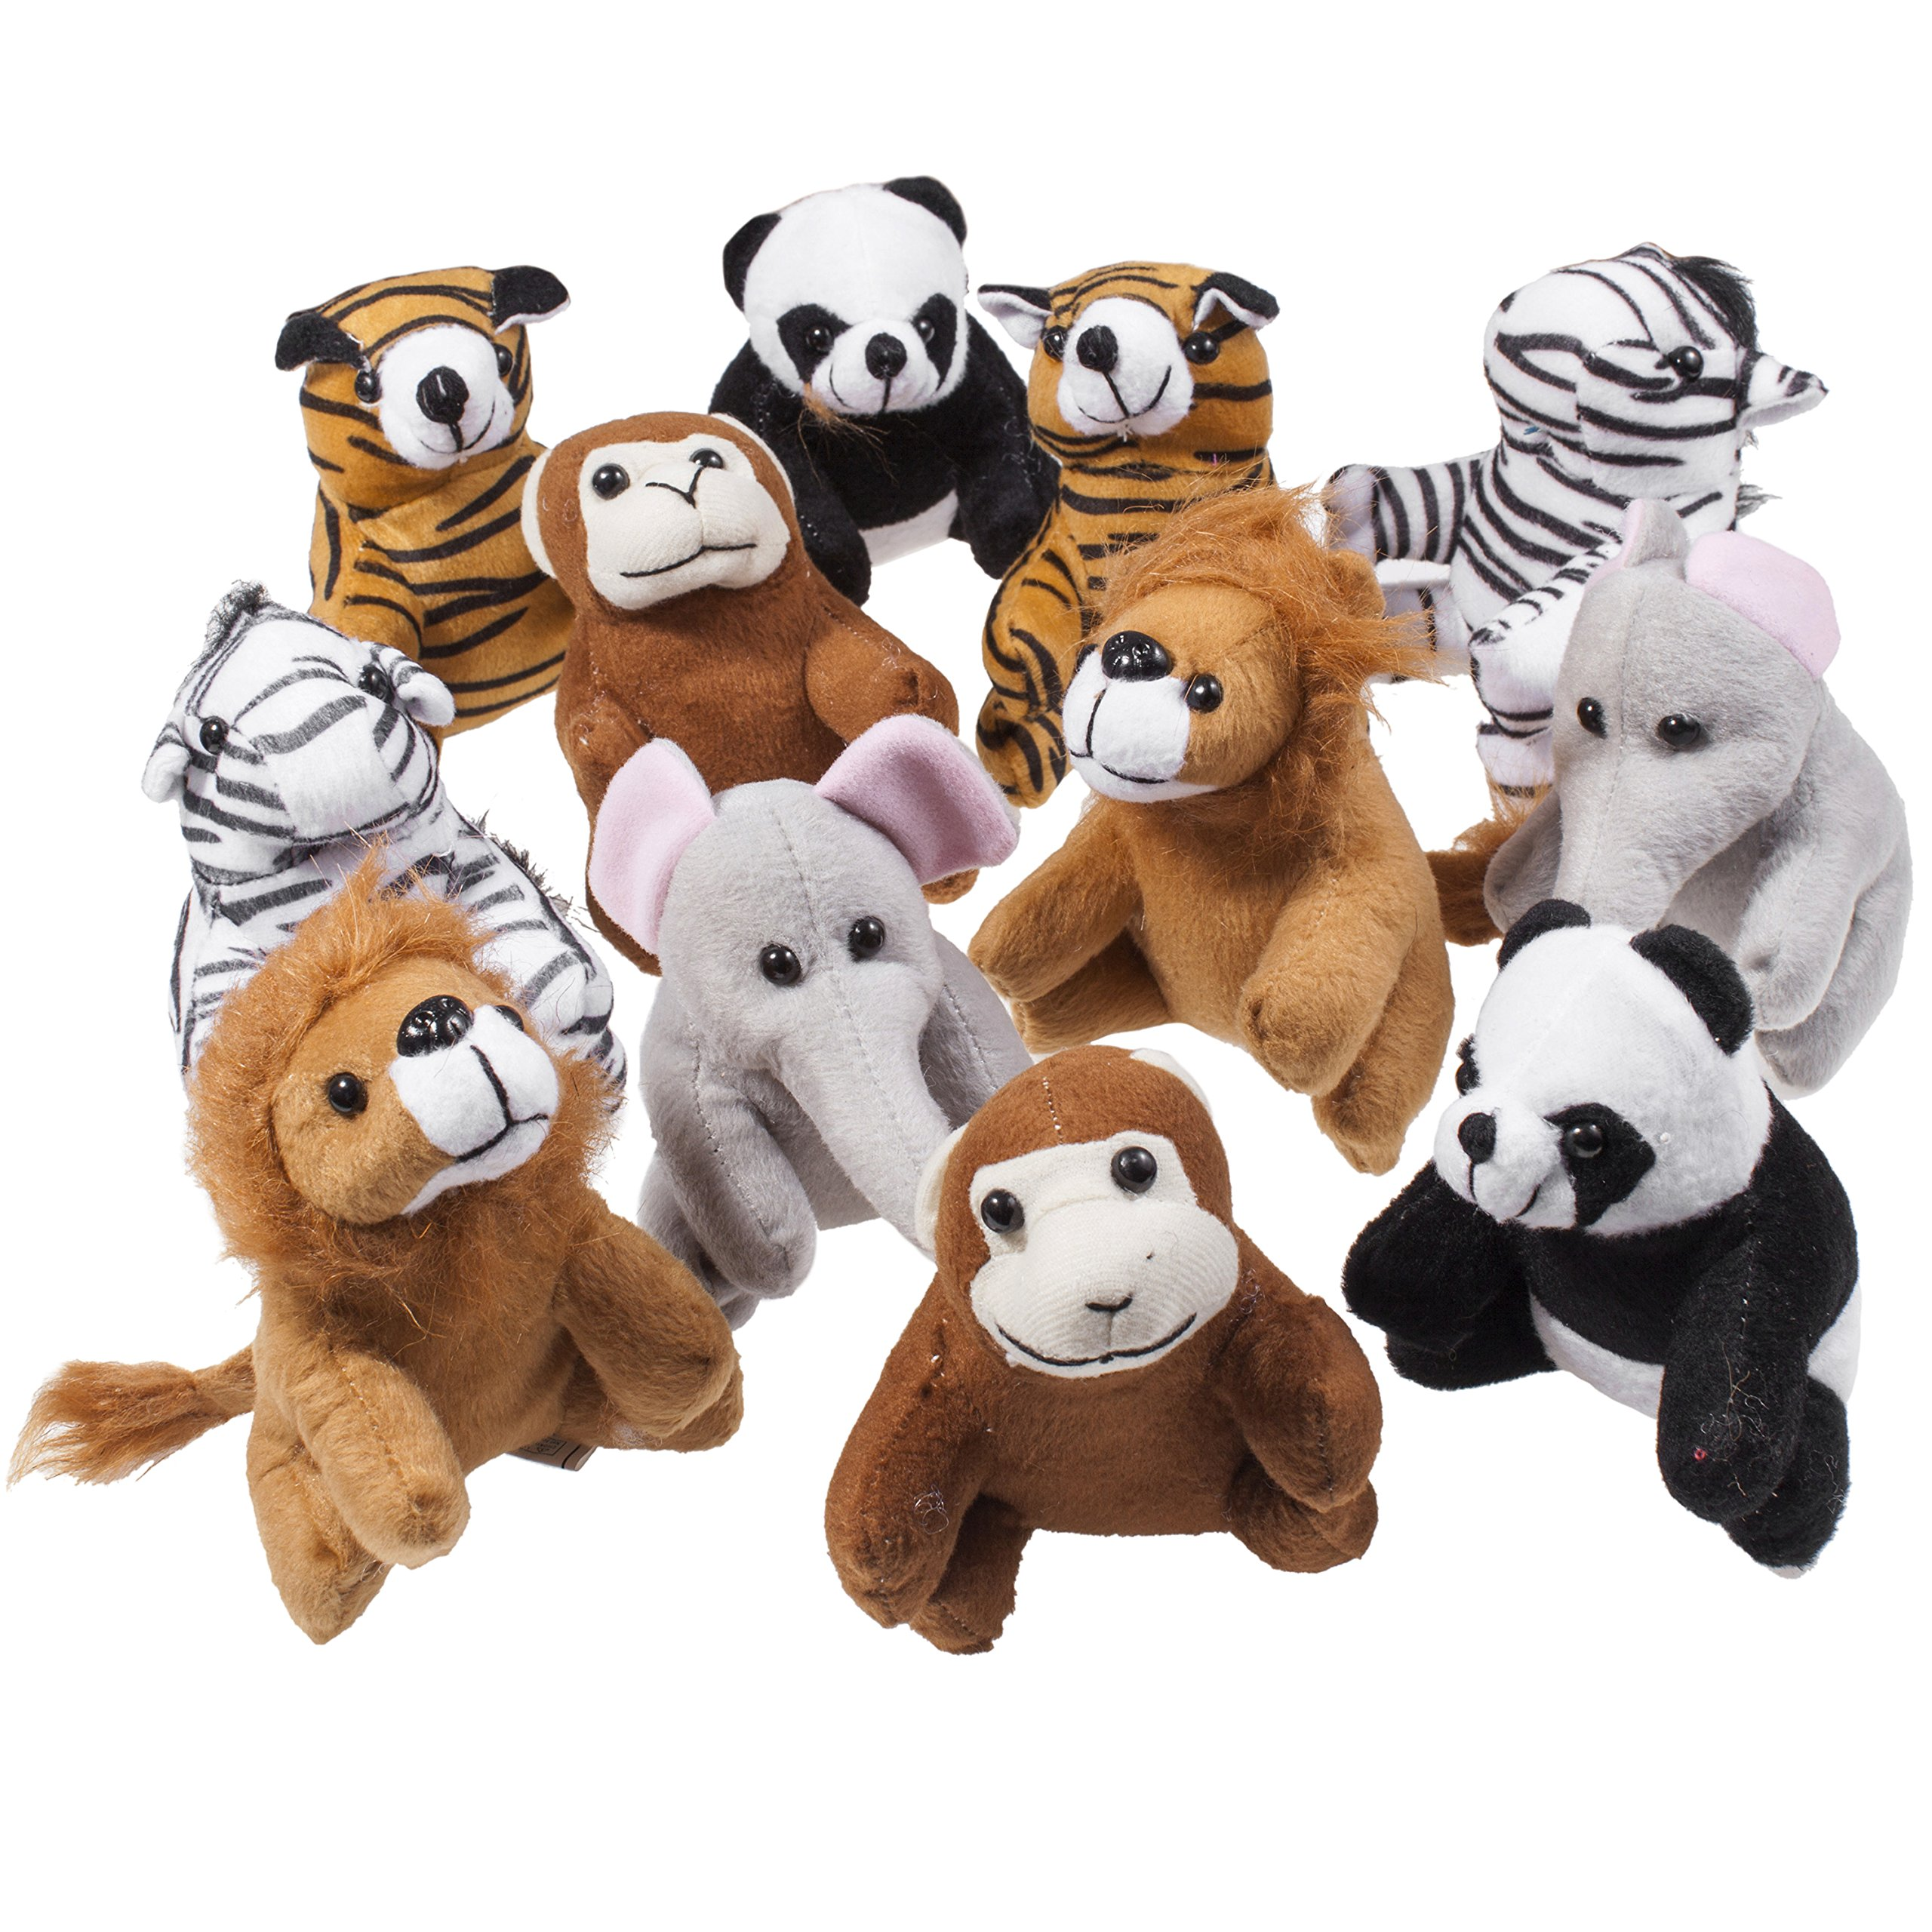 Set Of Dog Stuffed Animals, Amazon Com Ay Smart Inc Stuffed Toy Set Of 12 Plush Animals Includes A Plushed Bear Lion Monkey And Much More Toys Games